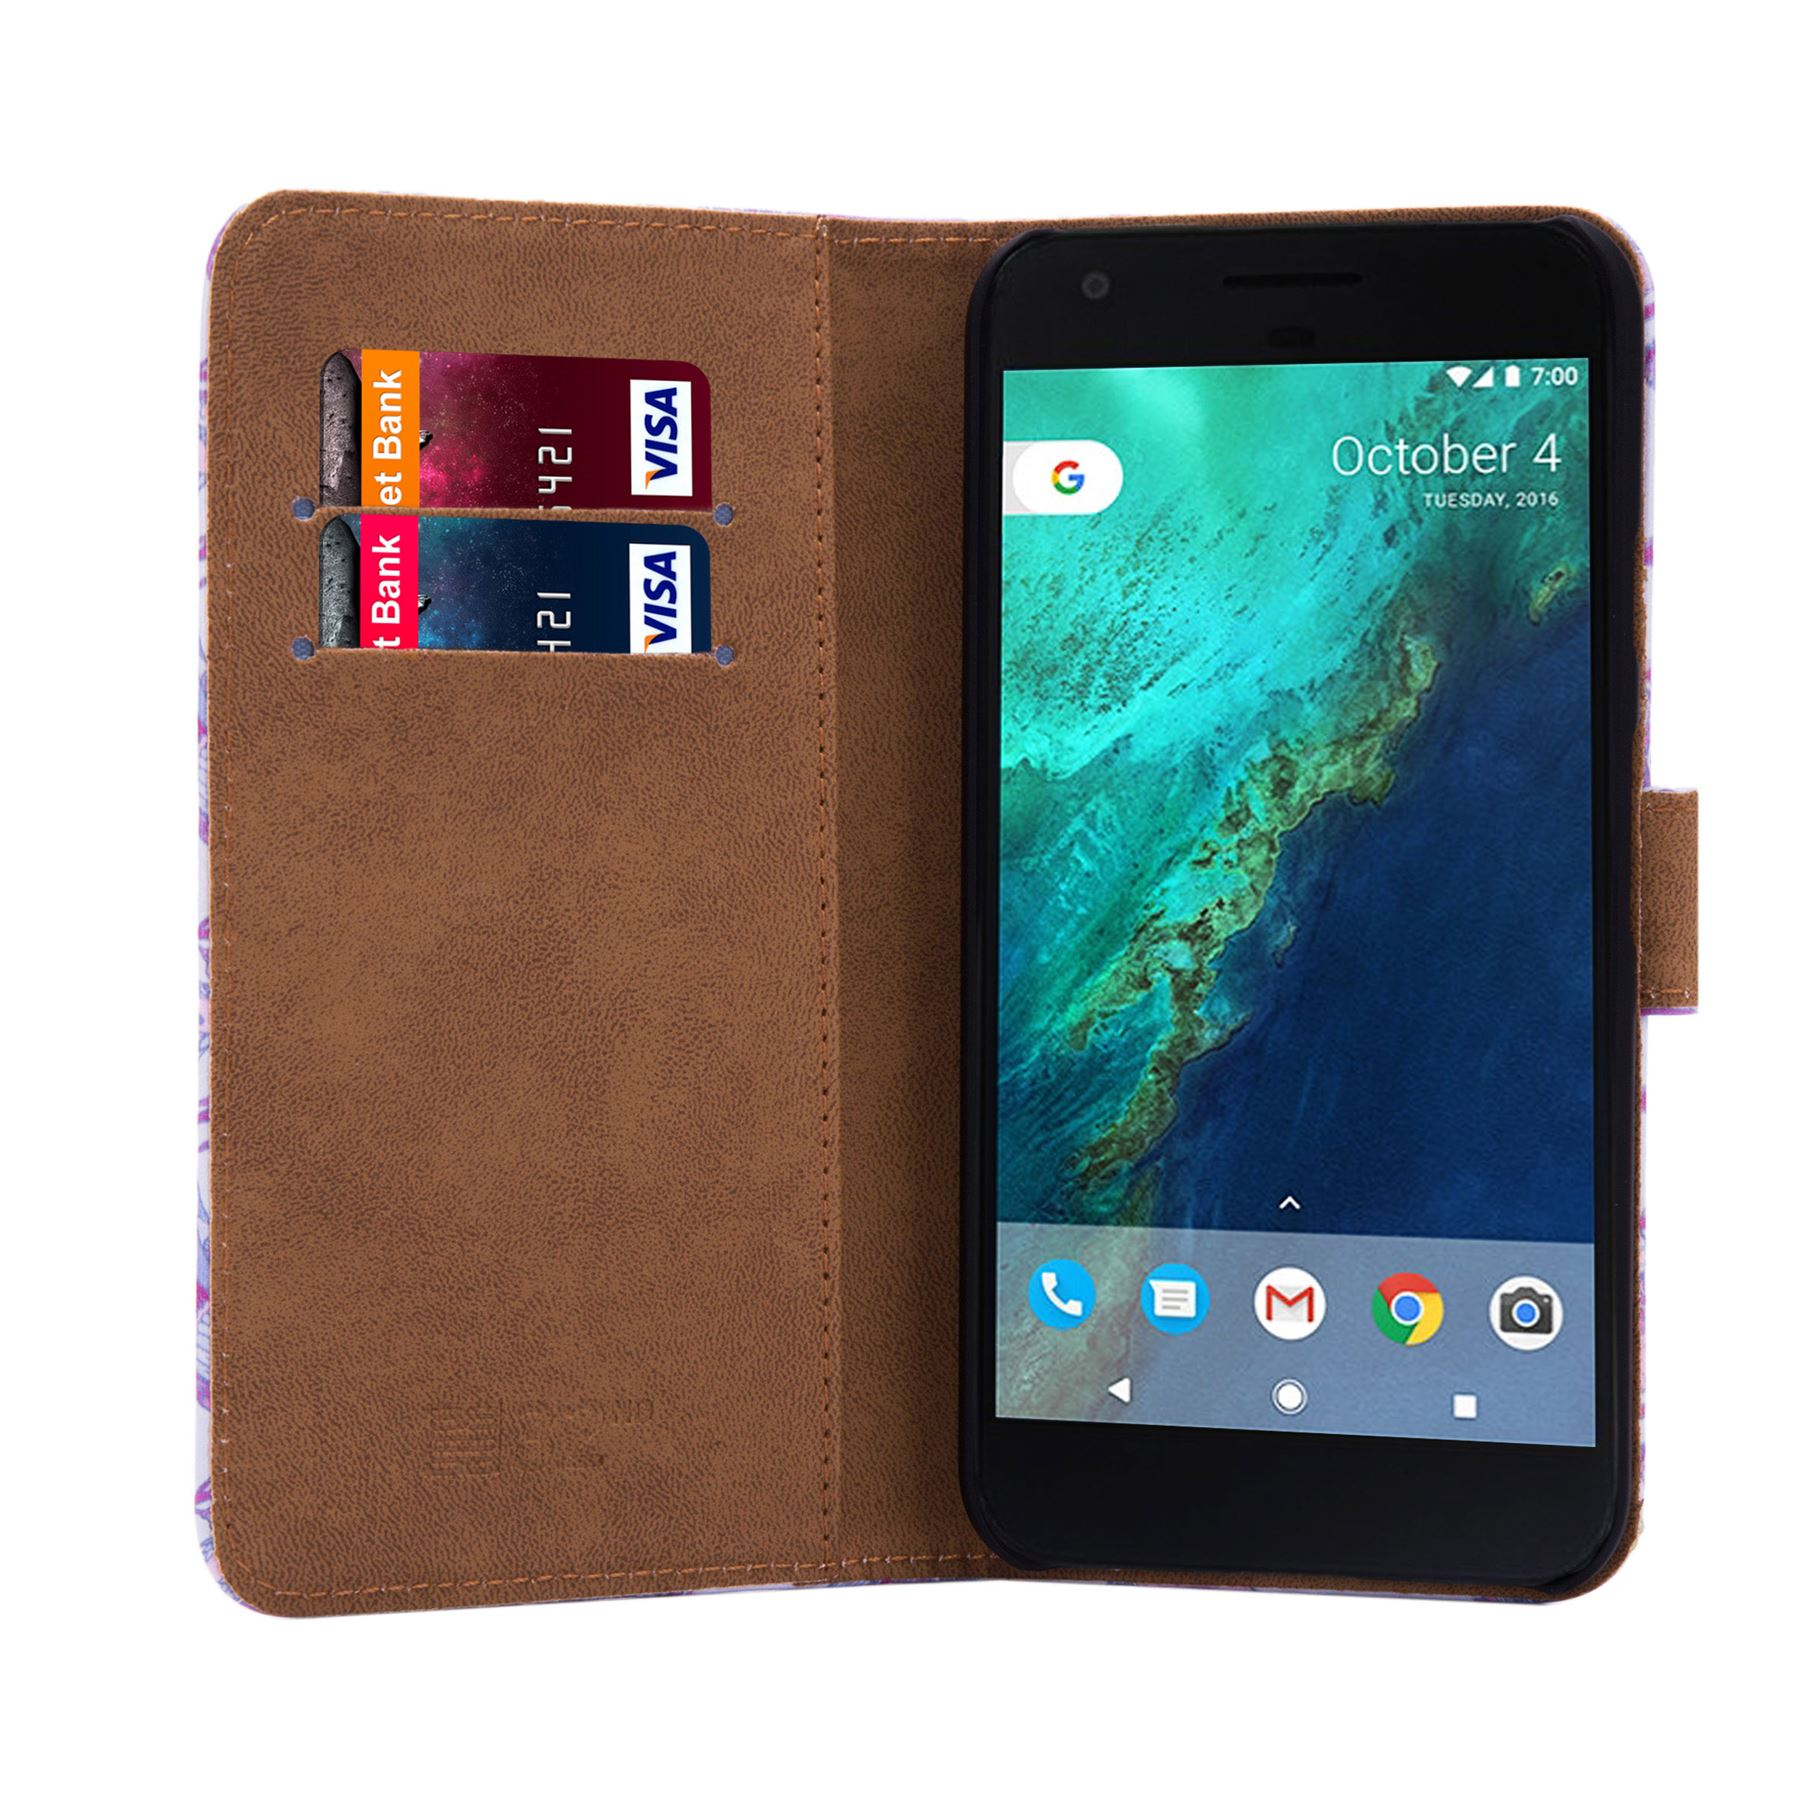 PU-Leather-Floral-Design-Book-Wallet-Case-Cover-For-Google-Pixel thumbnail 17